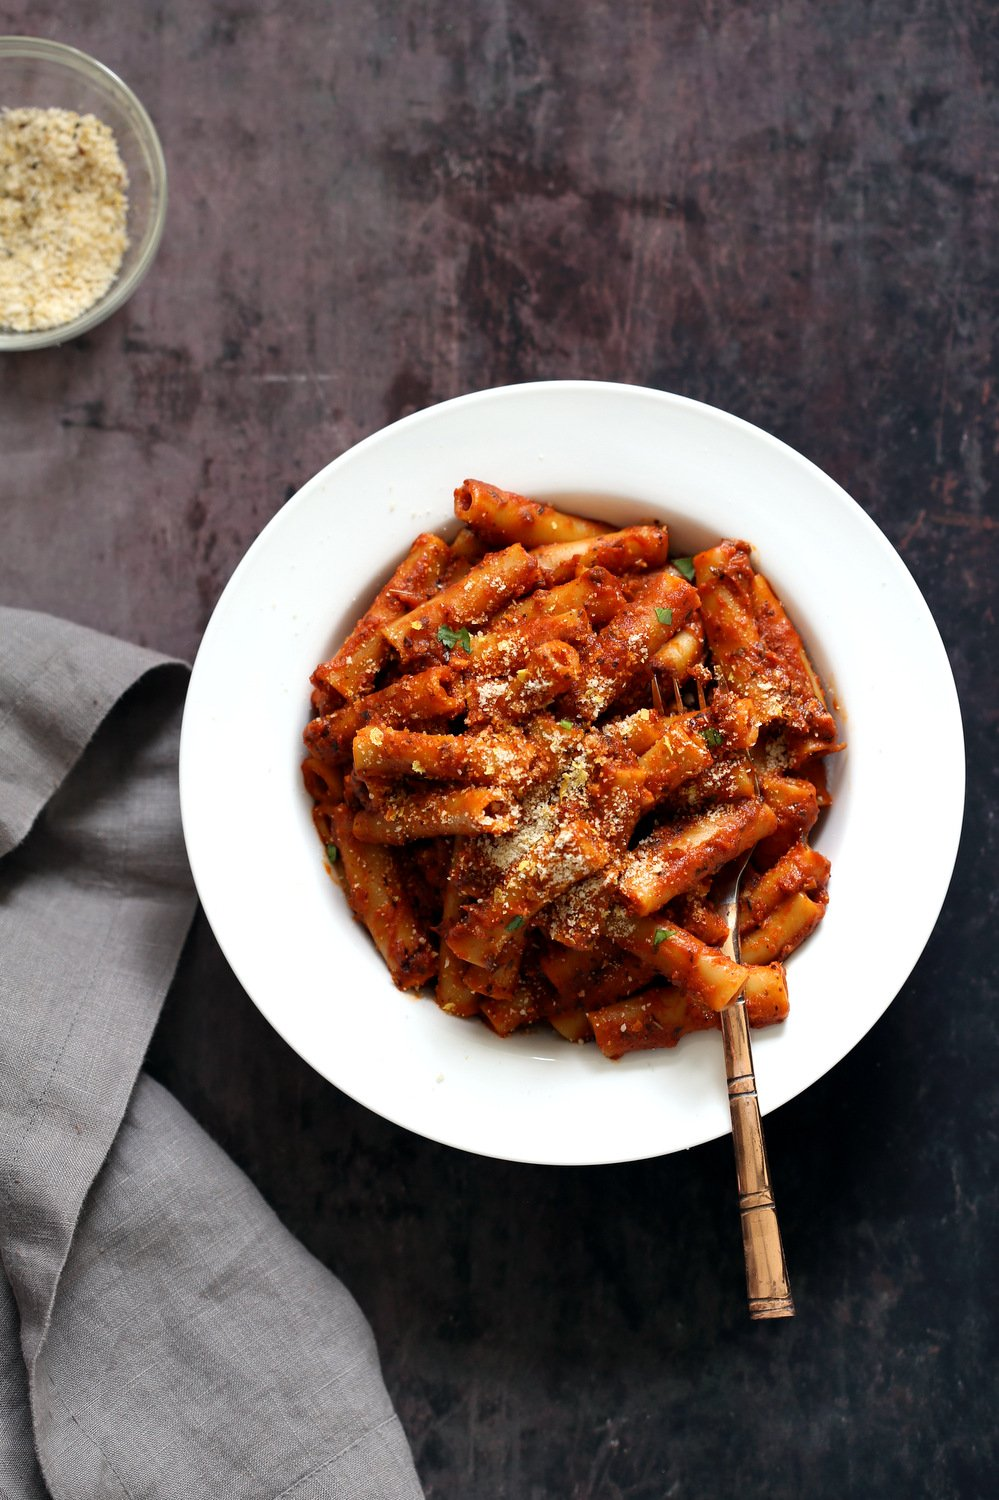 Instant Pot Baked Ziti with Tomato Sauce. Date Night Quick Pasta. Vegan Ziti, sprinkled with vegan parm and fresh herbs. #Vegan #Soyfree #Recipe #VeganRicha #instantPot #pasta . Easily #Glutenfree, #Nutfree